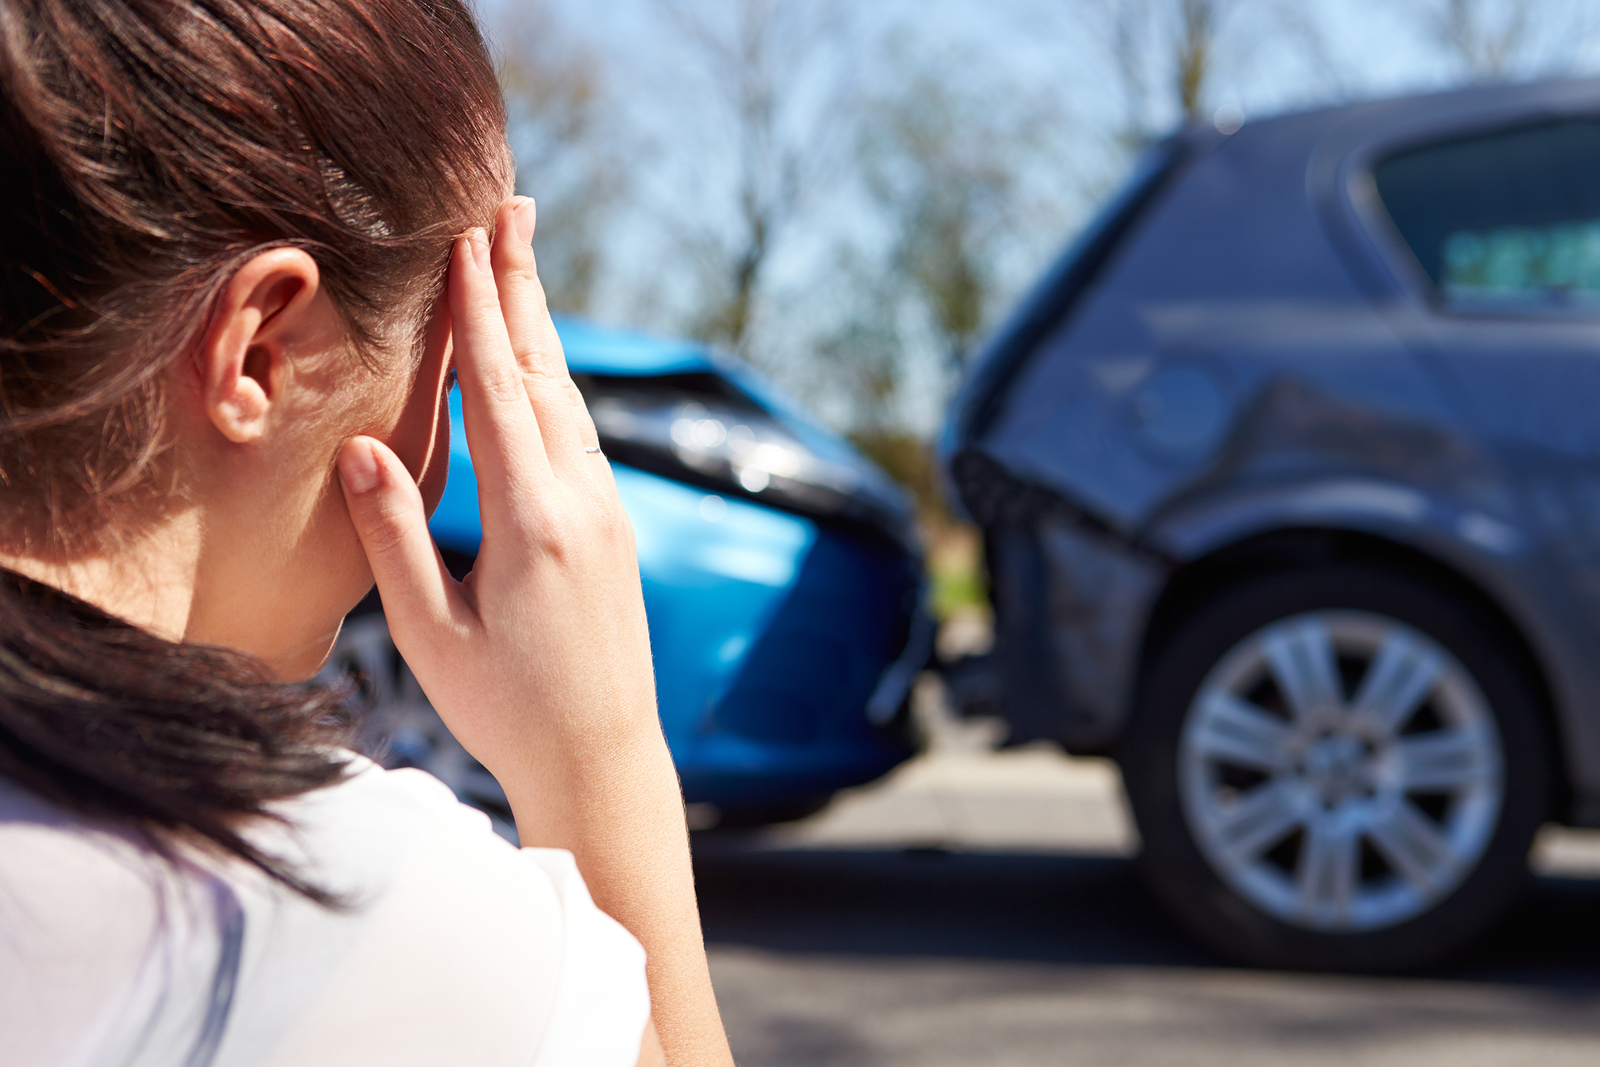 Accident Injury Chiropractor in Lake Worth FL